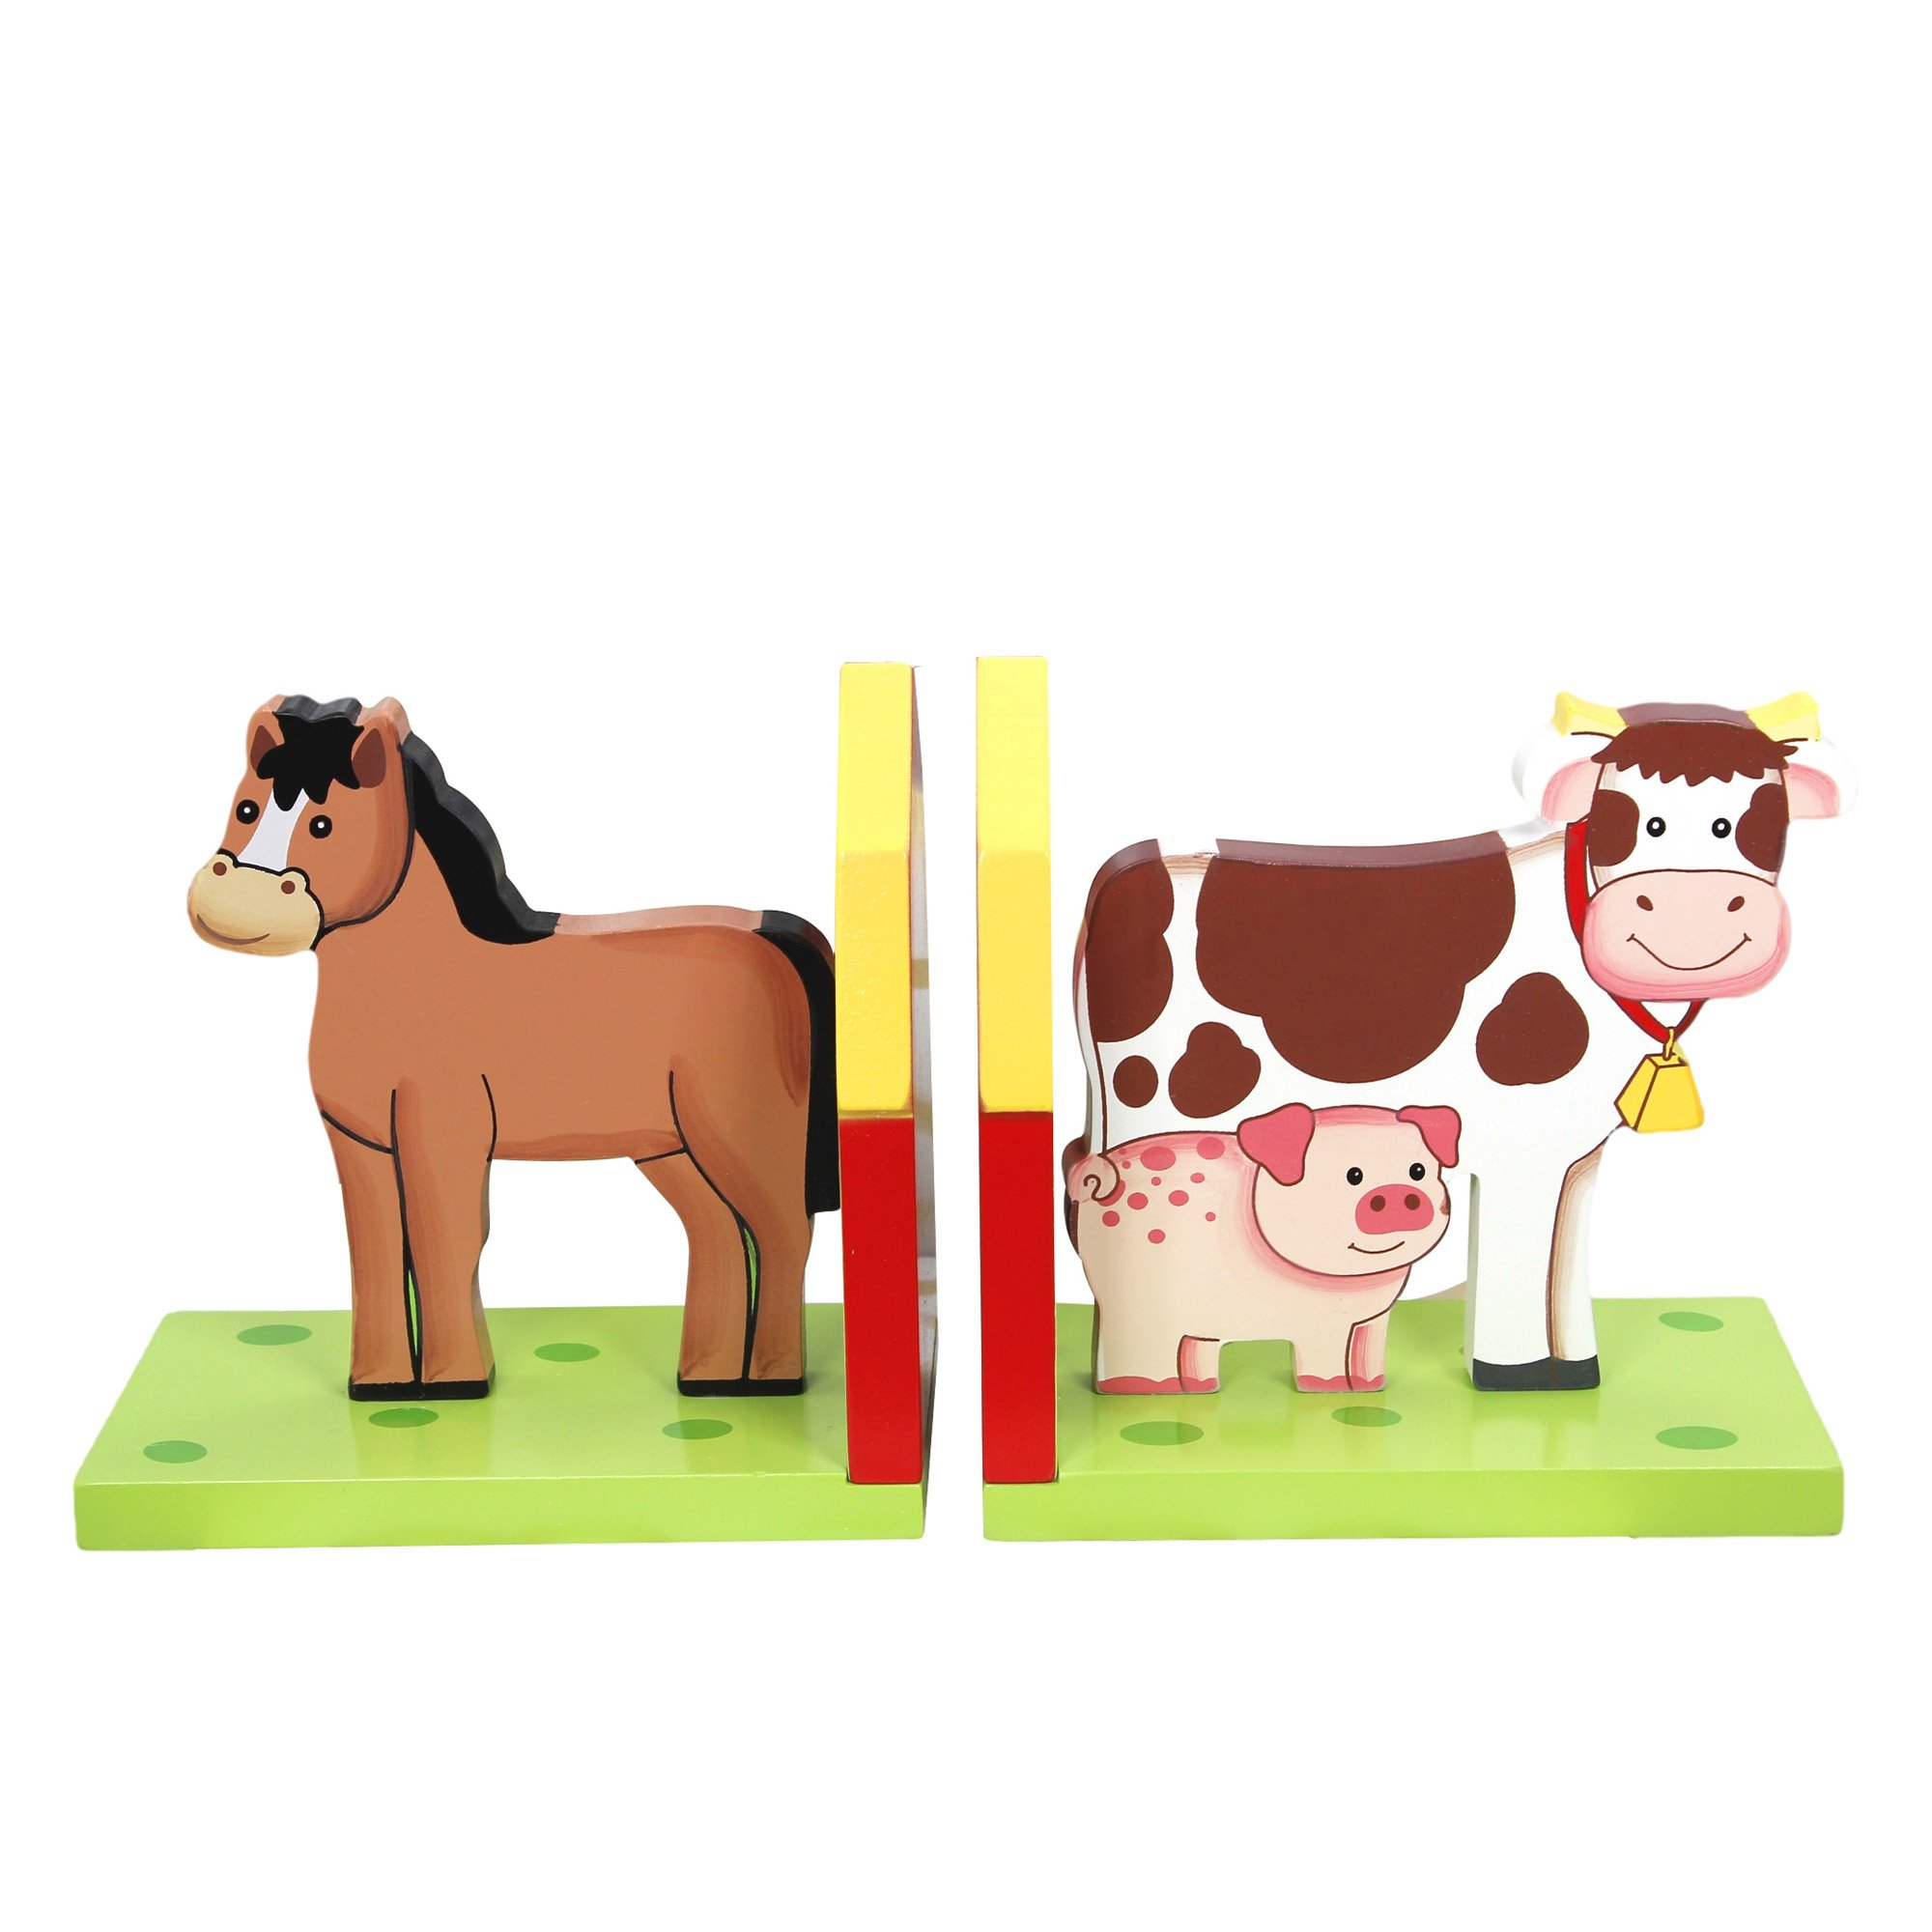 Fantasy Fields - Happy Farm Animals Thematic Set of 2 Wooden Bookends for Kids |  Imagination Inspiring  Hand Crafted & Hand Painted Details | Non-Toxic, Lead Free Water-based Paint